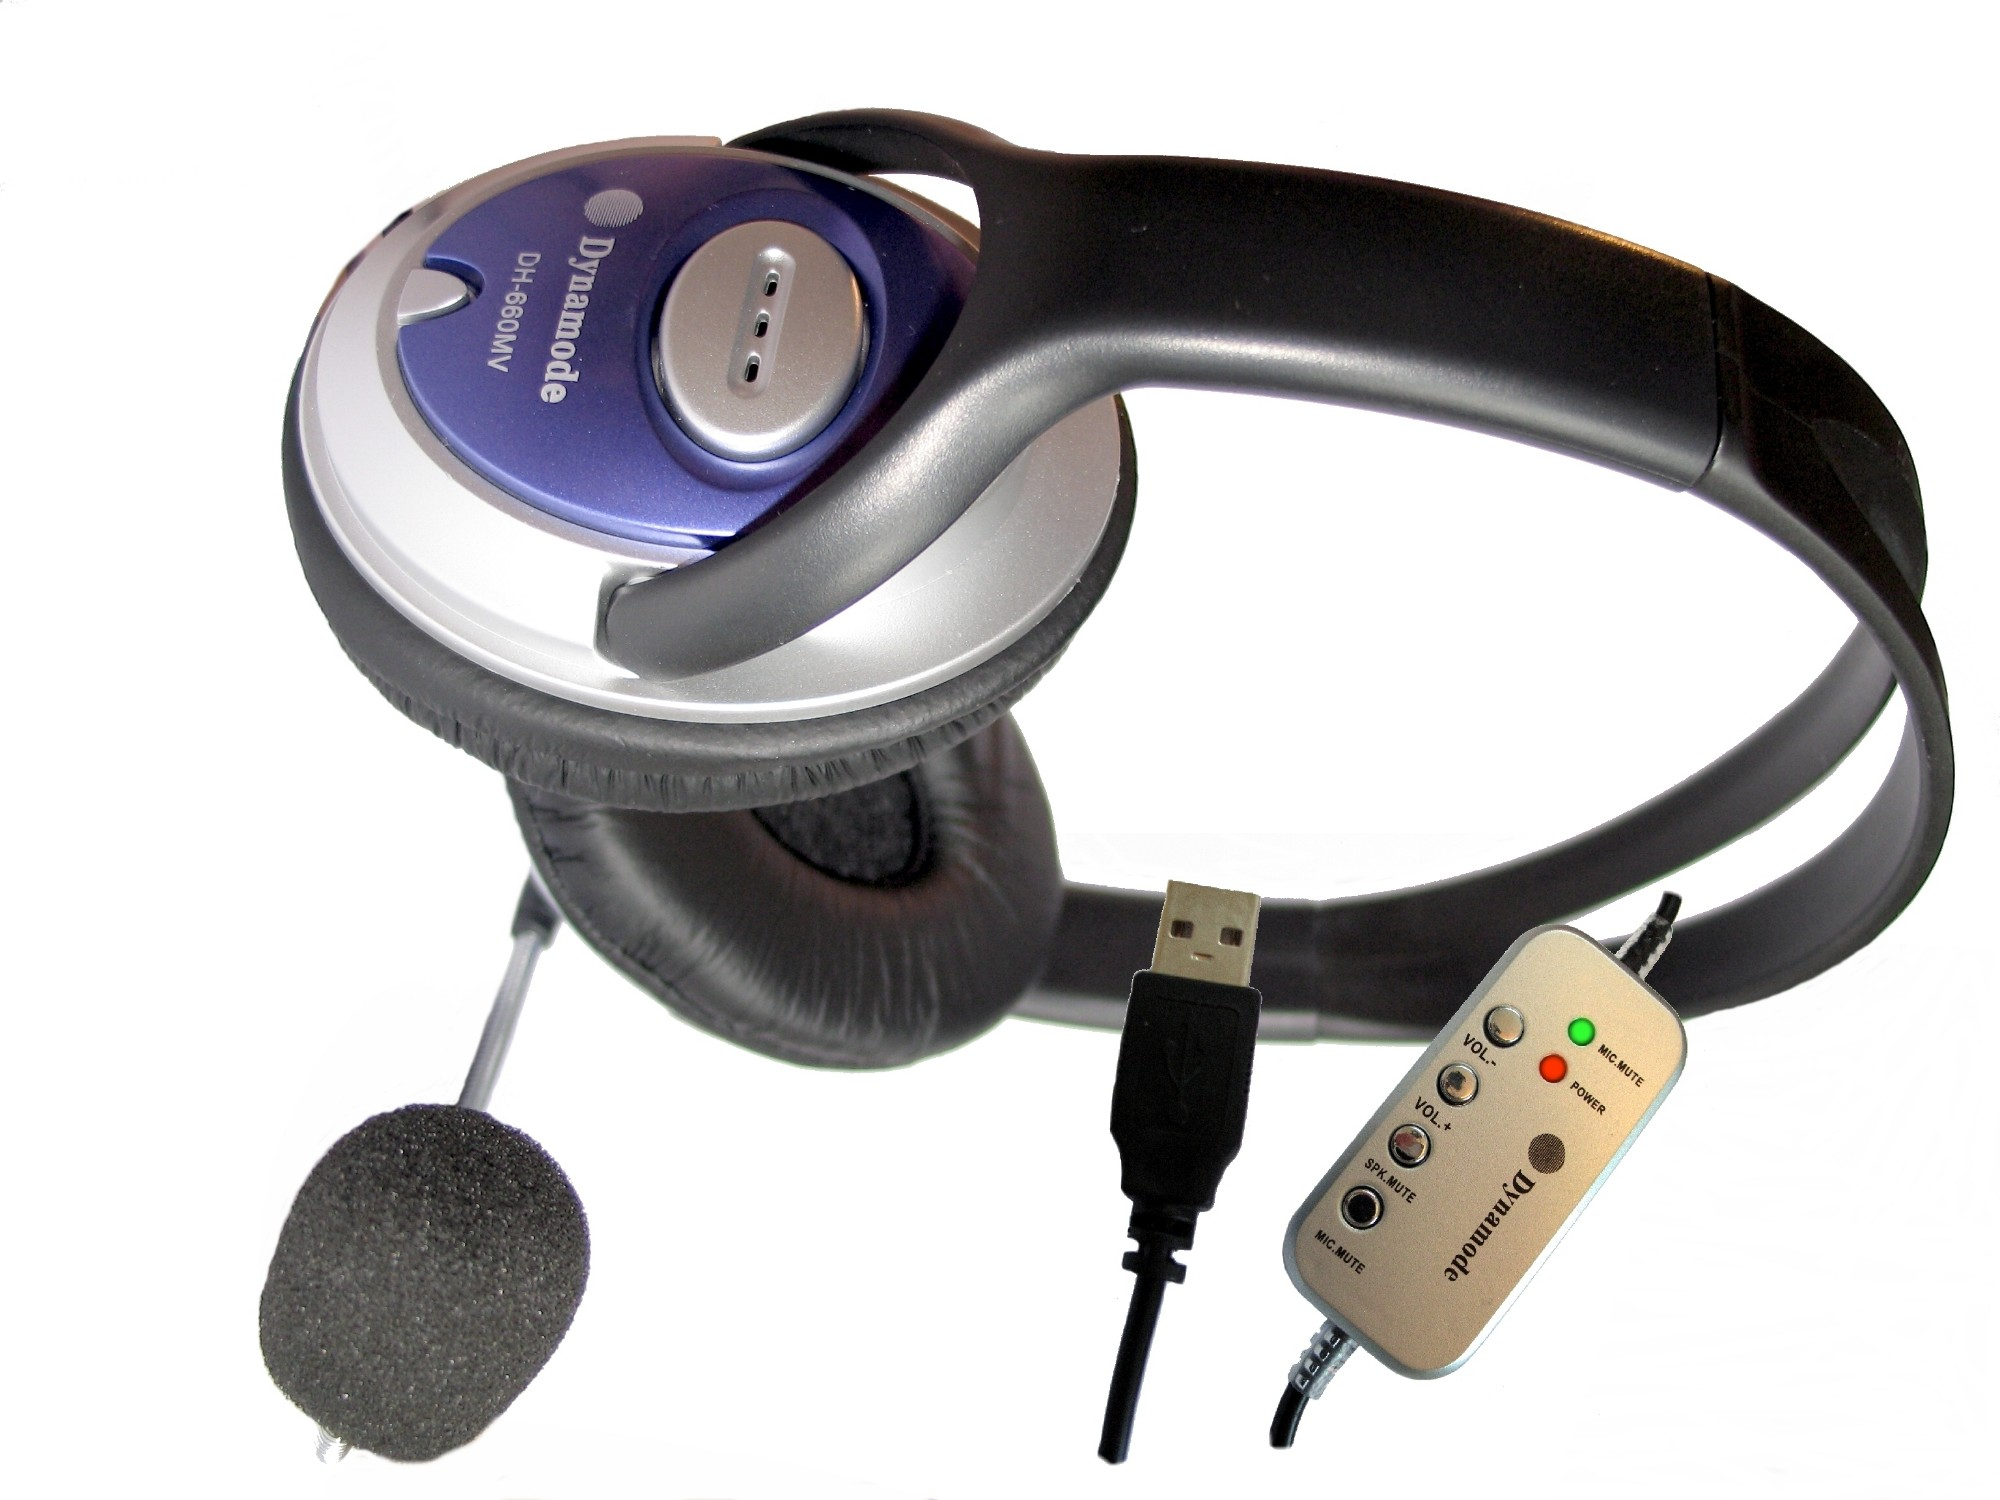 Stereo Headphone Dh-660 With Microphone USB